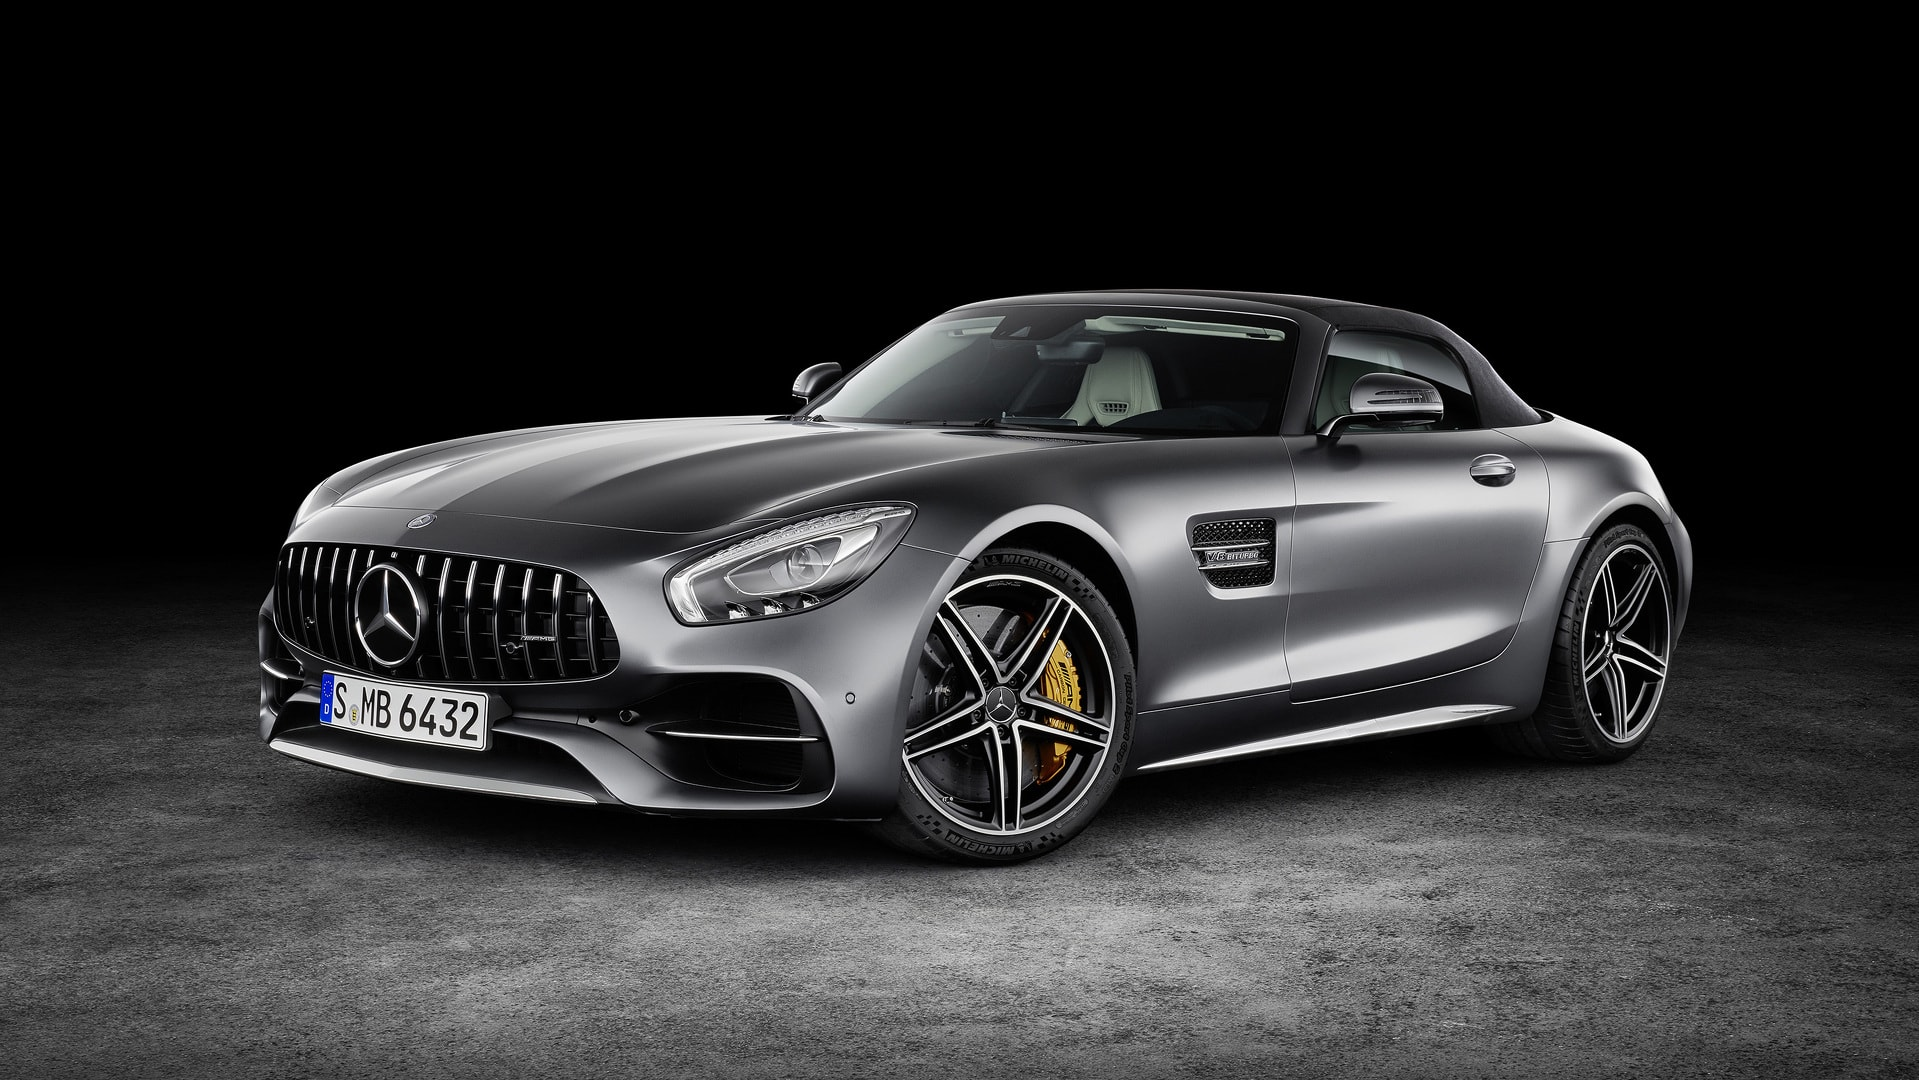 Mercedes-AMG GT Roadster Full hd wallpapers